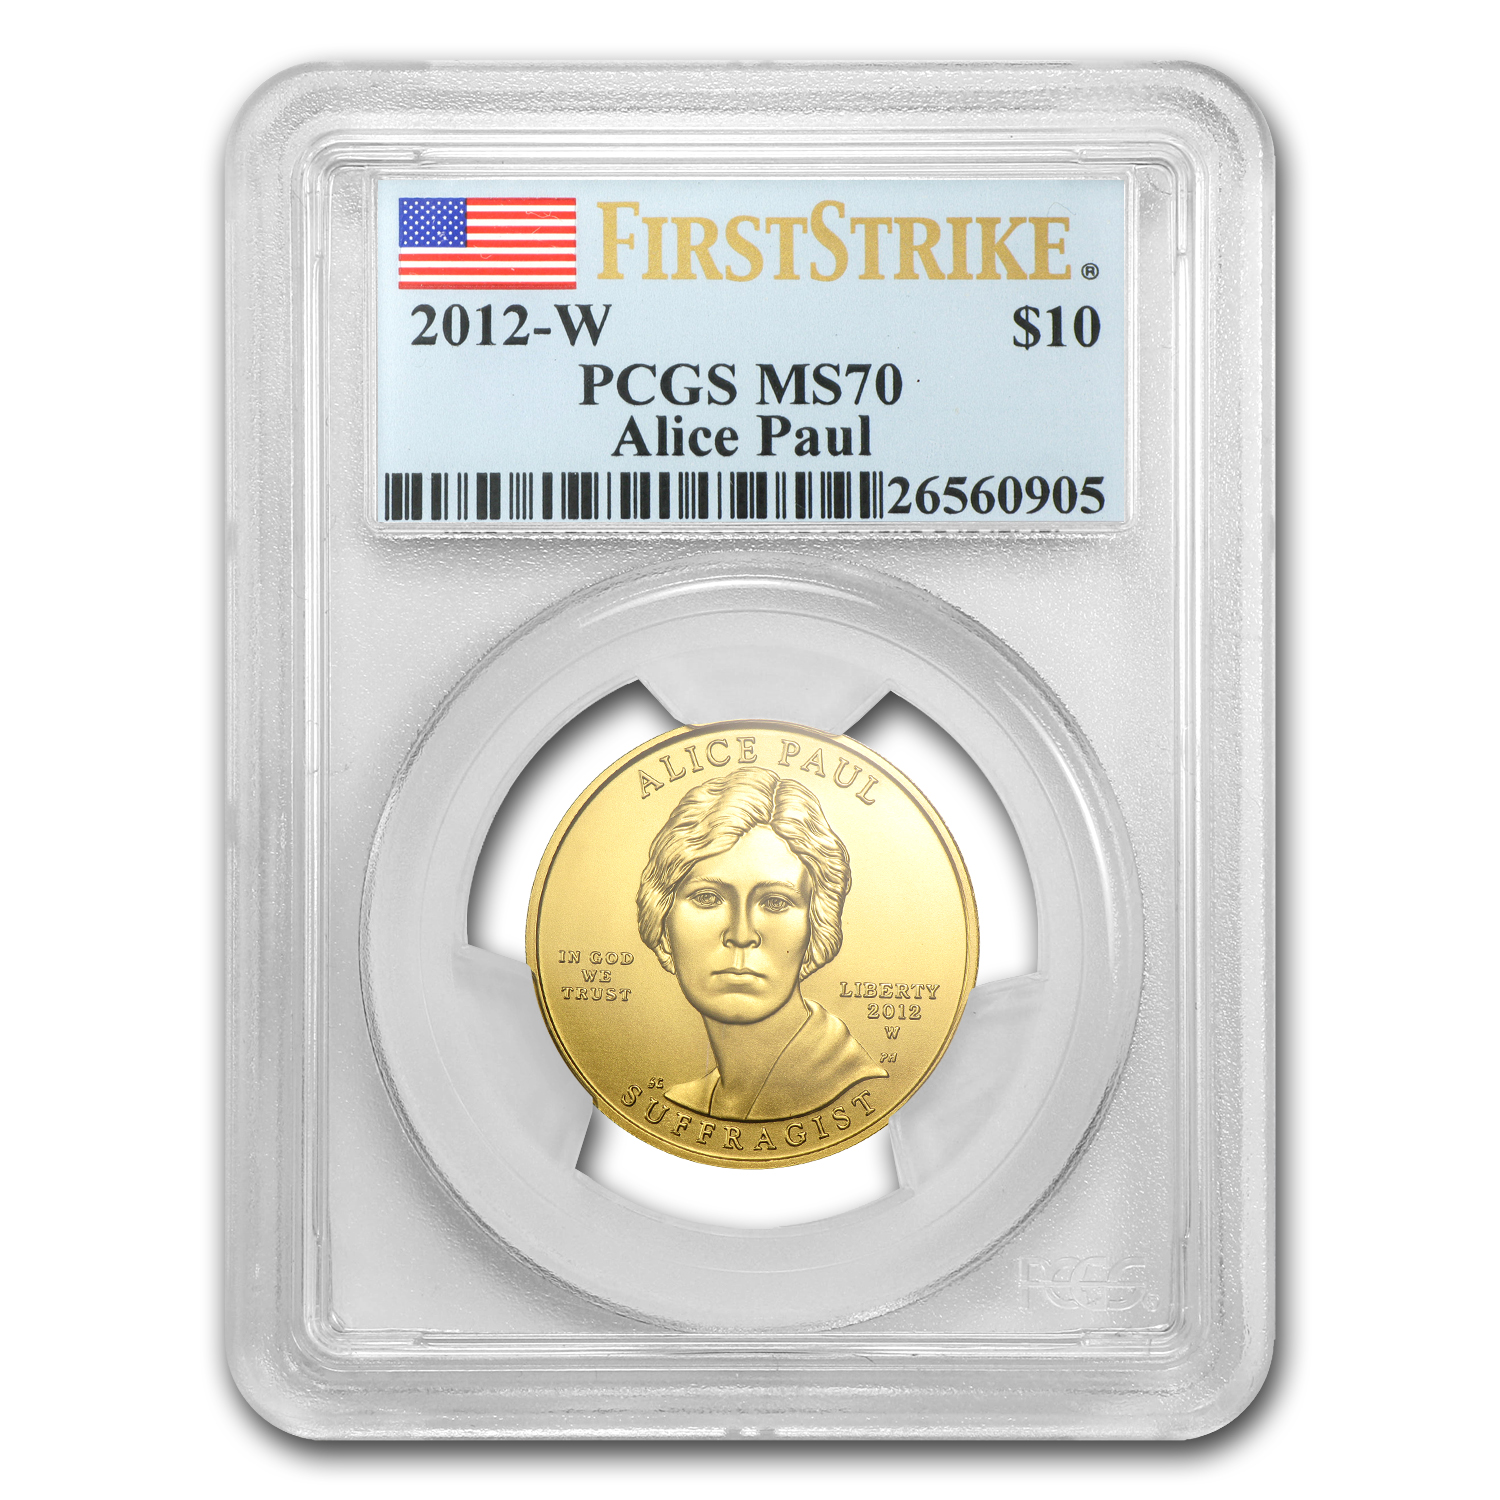 2012-W 1/2oz Uncirculated Gold Alice Paul PCGS MS-70 First Strike